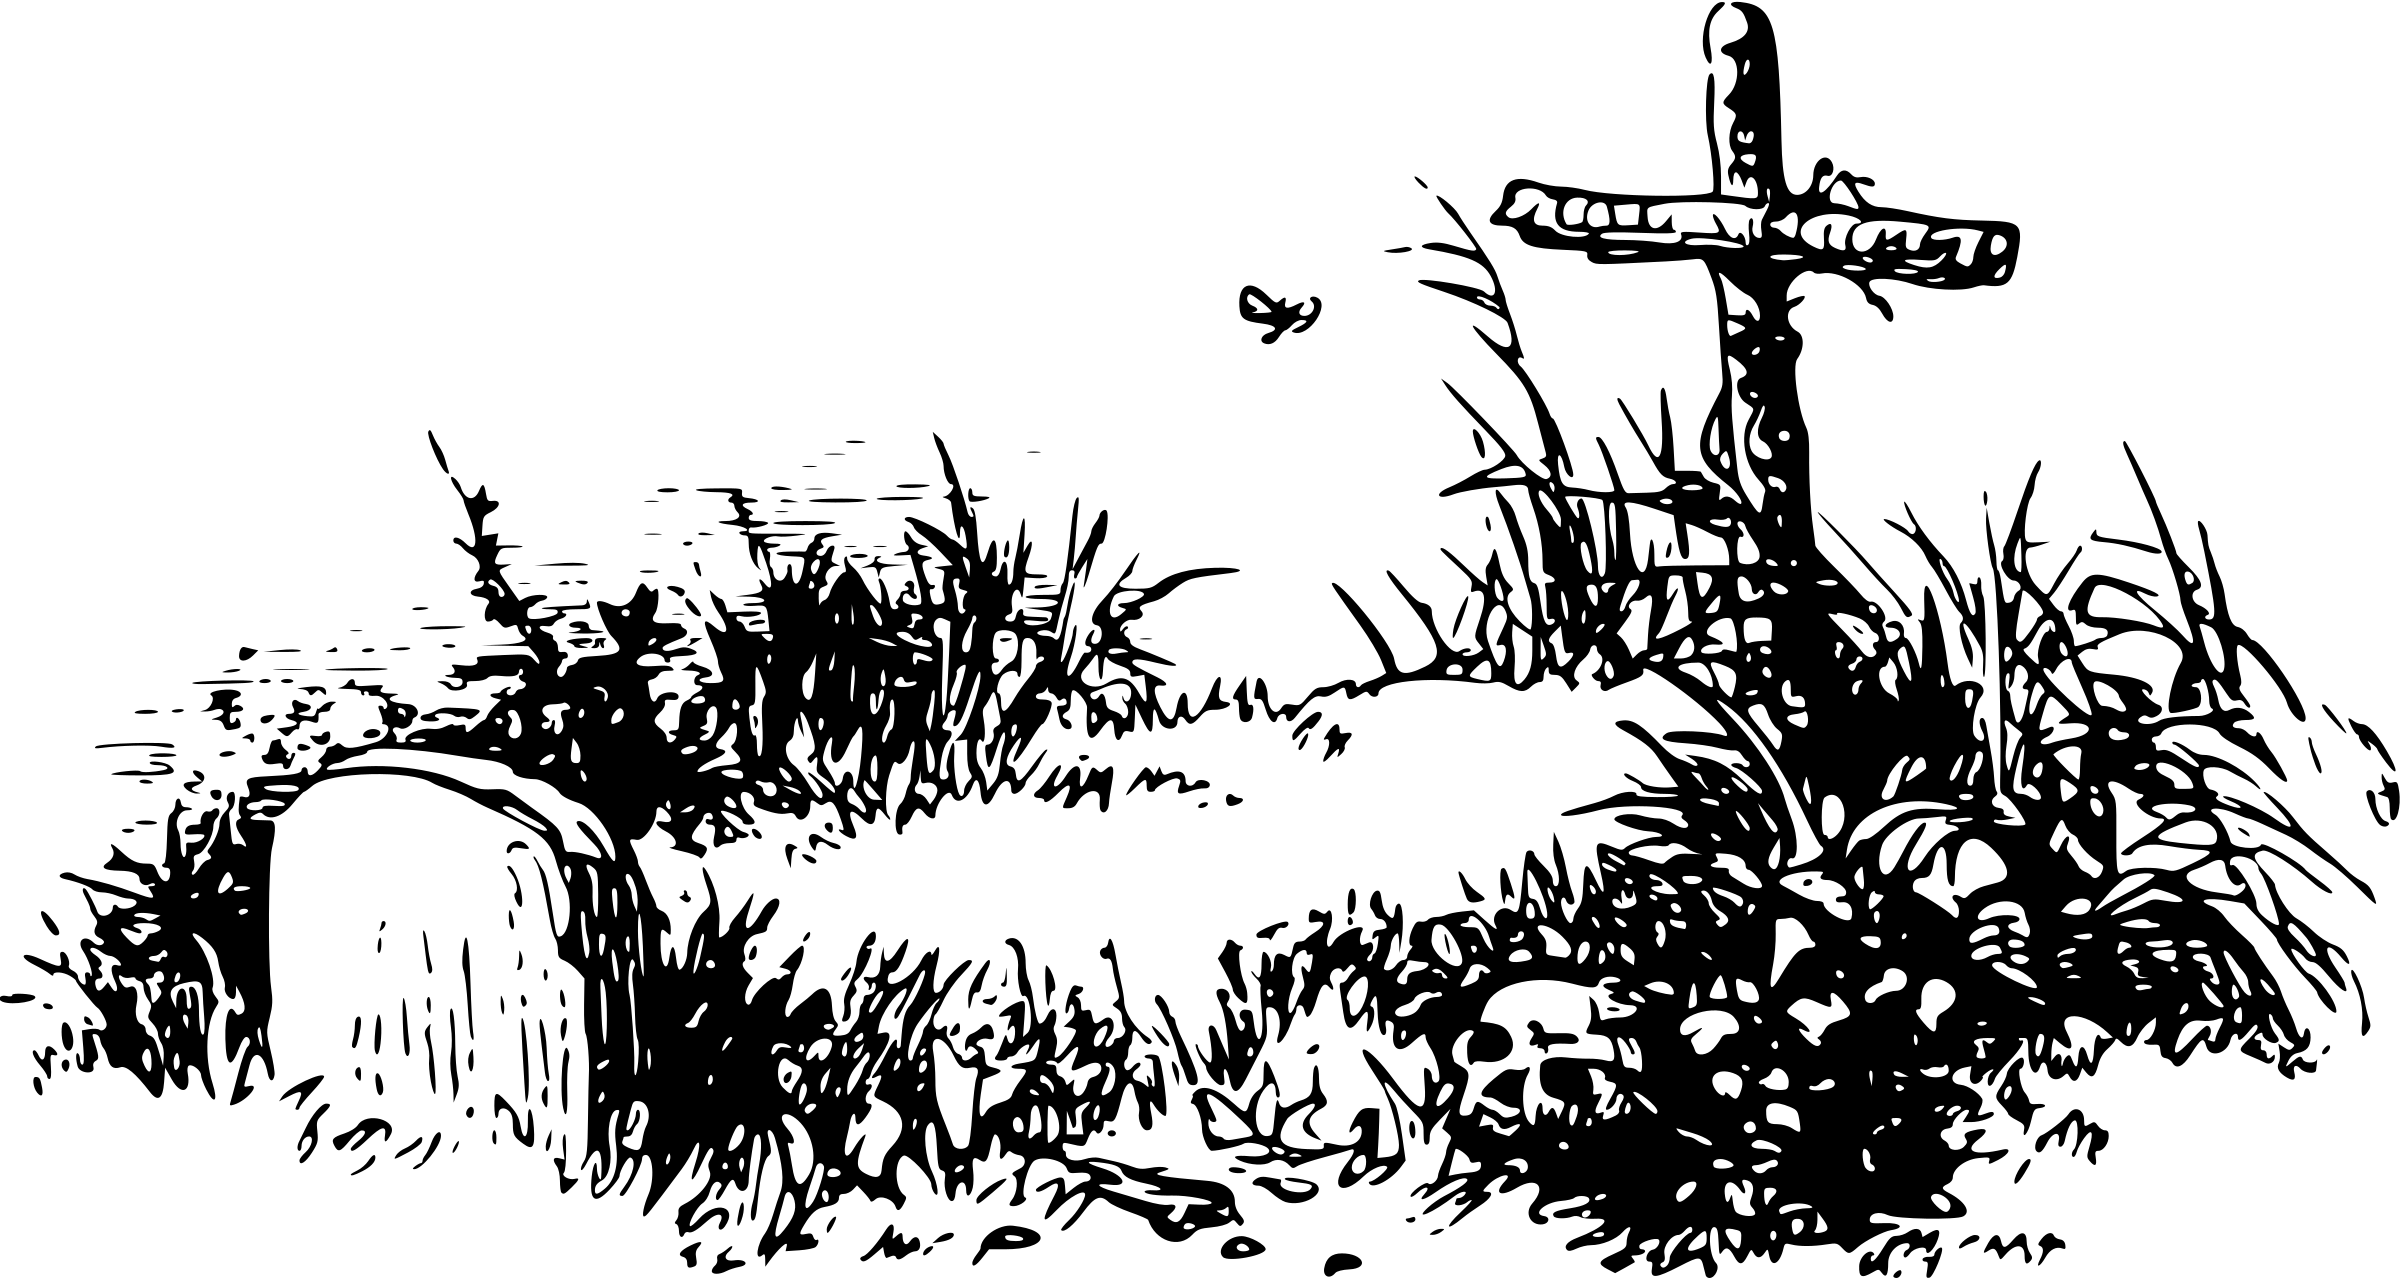 Cemetery transparent png stickpng. Graveyard clipart clip art library library